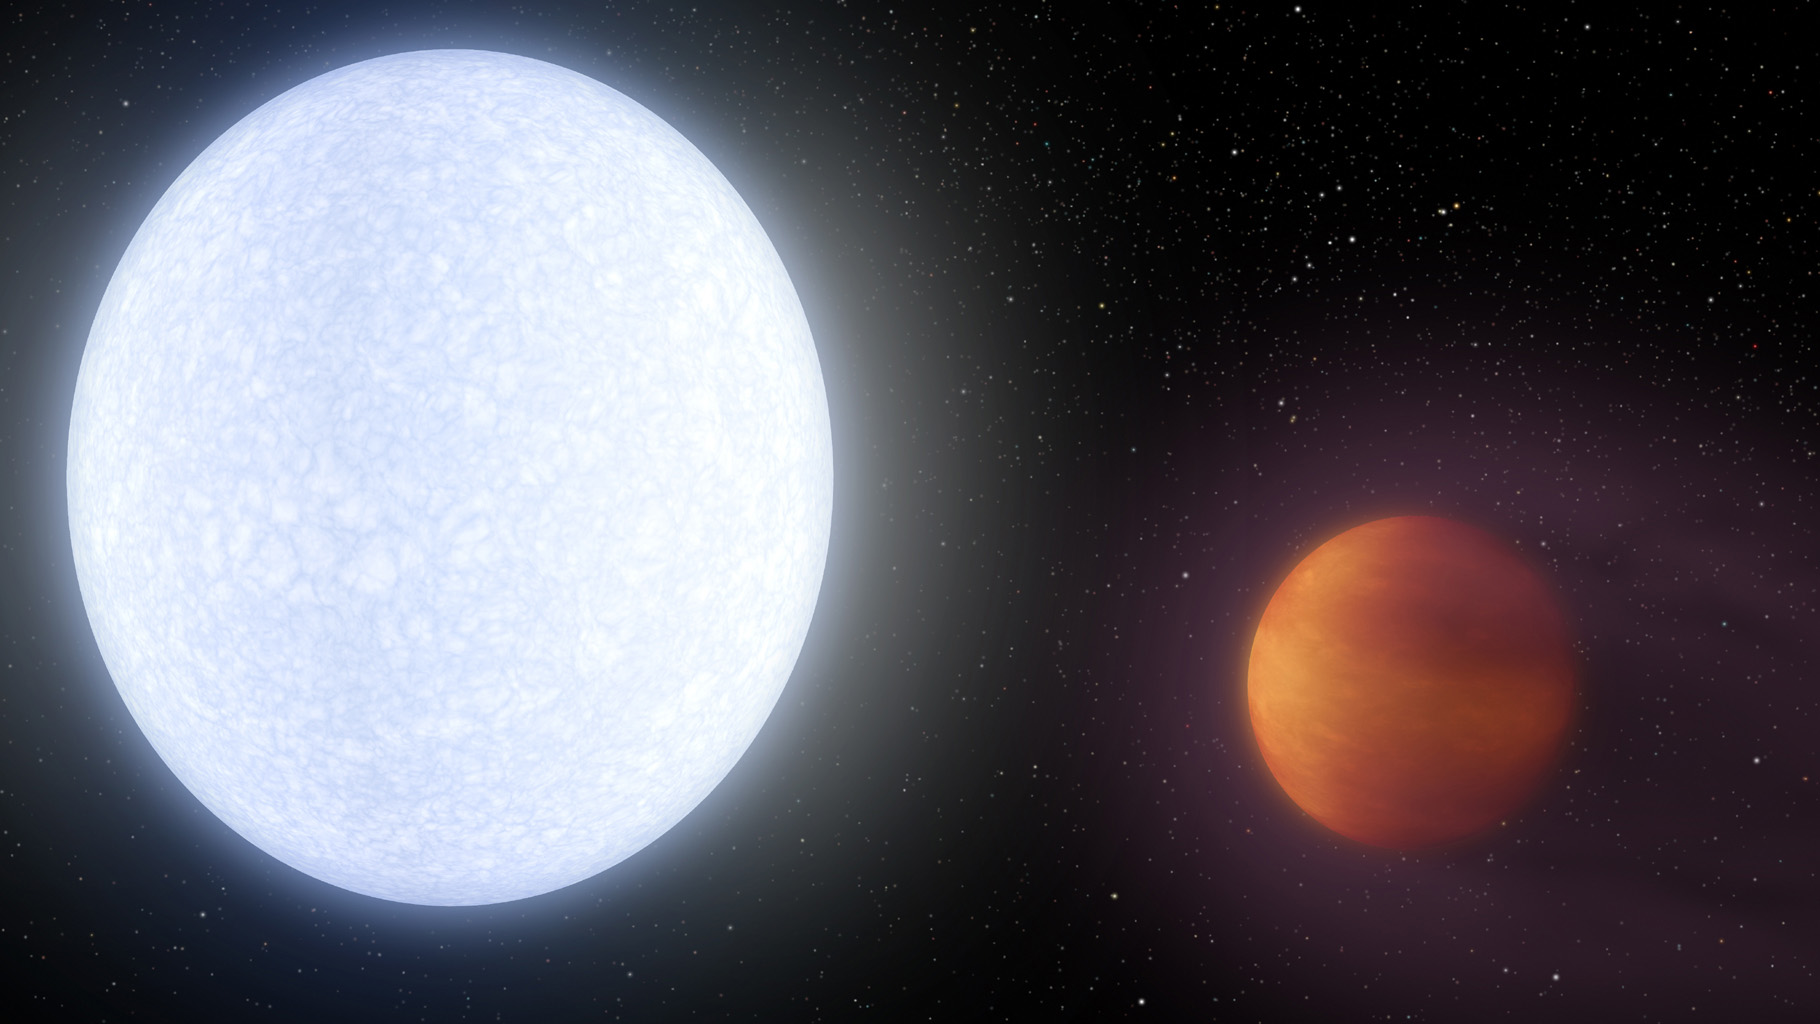 This artist's concept shows planet KELT-9b orbiting its host star, KELT-9. It is the hottest gas giant planet discovered so far.